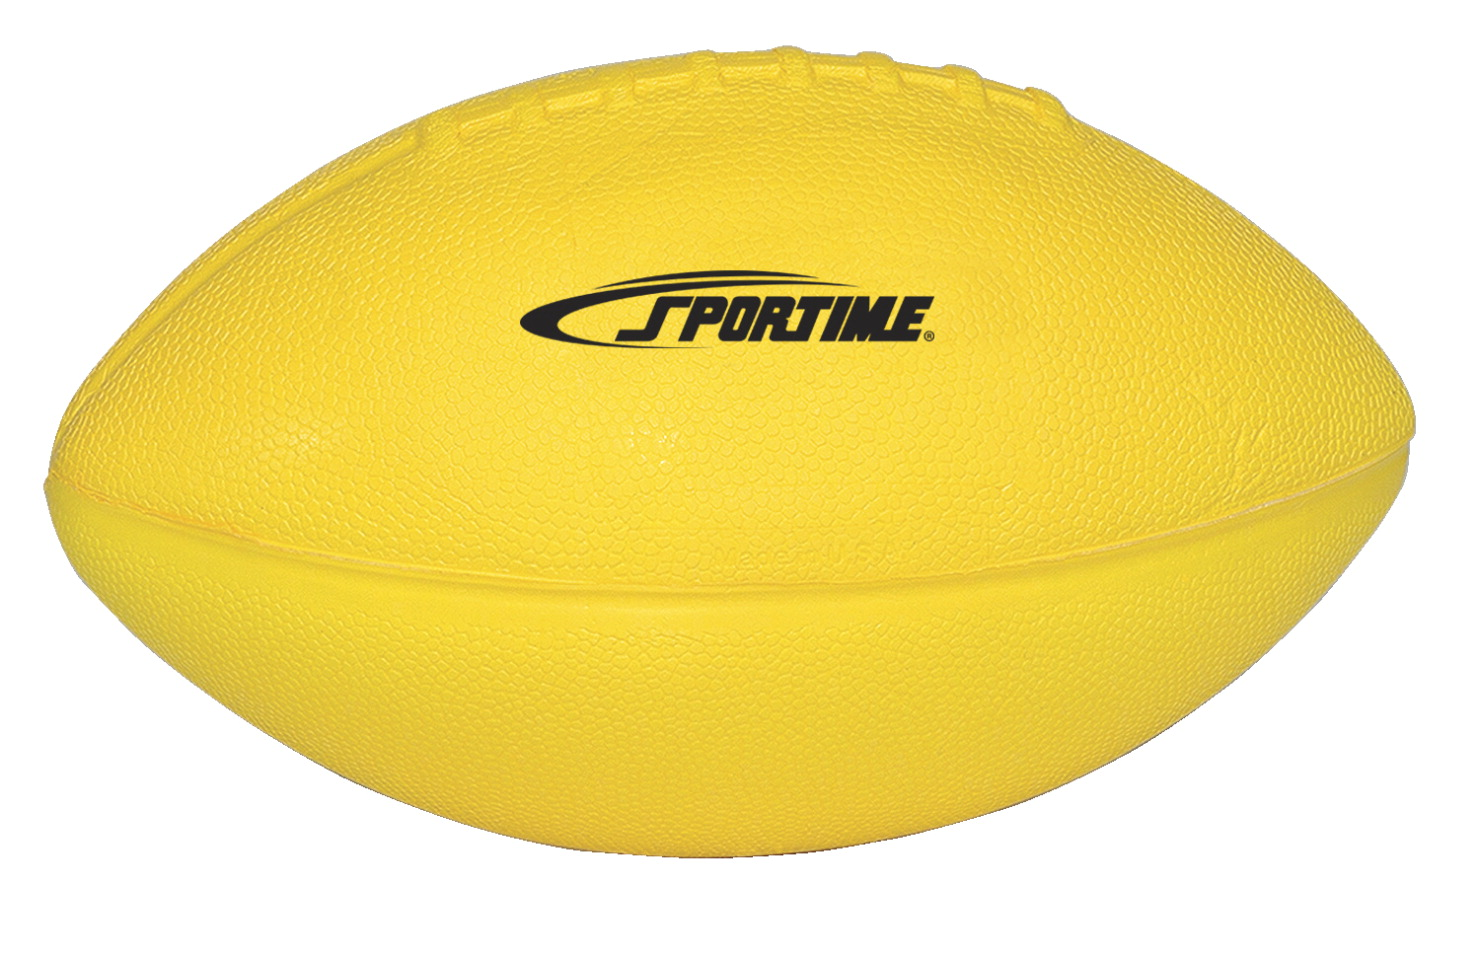 Sportime Coated Foam Junior Football High Visibility Yellow